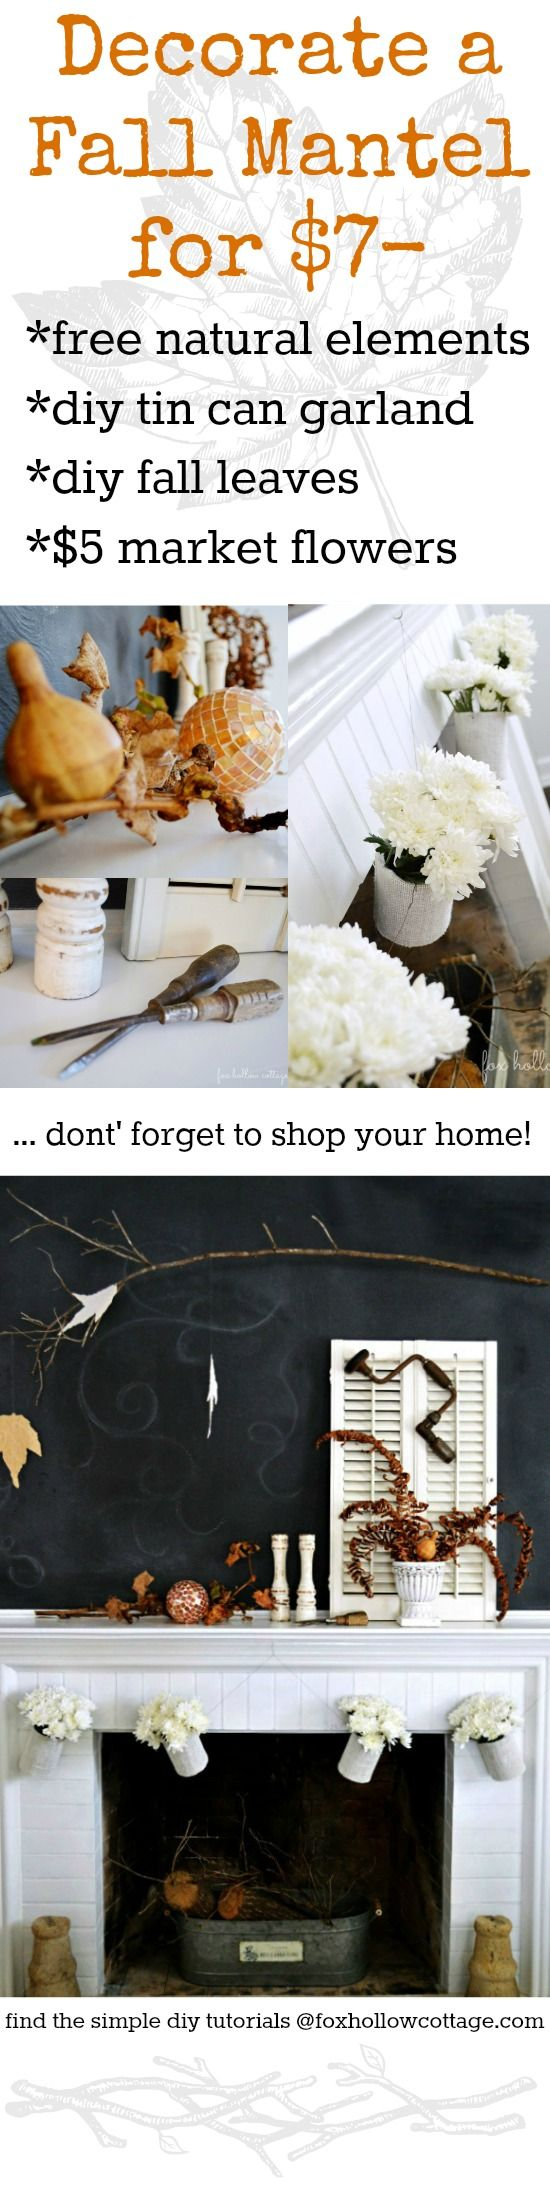 DIY Fall Mantel Decorating: Low Budget Craft and Home Decor Ideas at foxhollowcottage.com